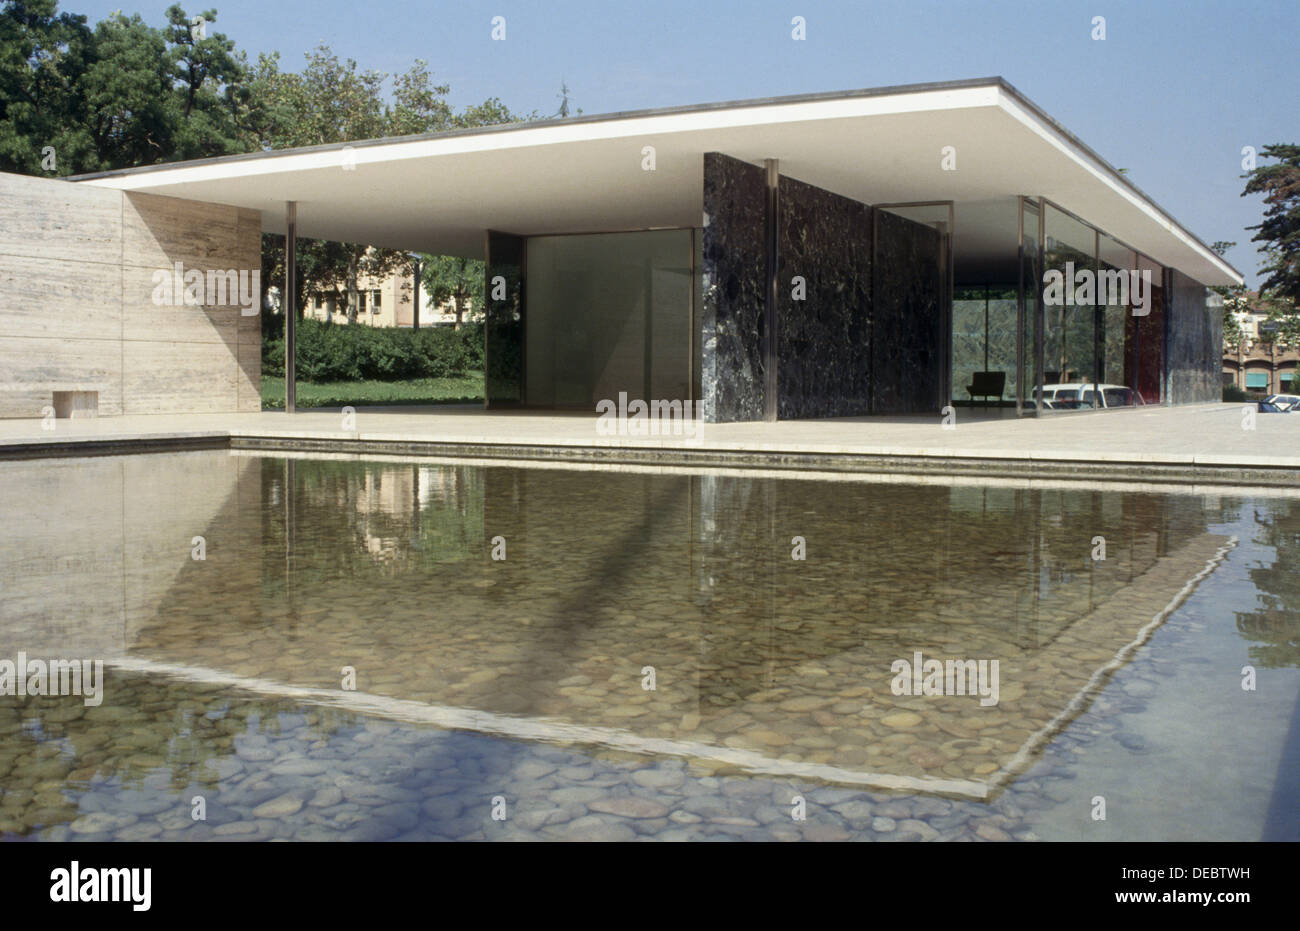 German Pavilion 1929 By Mies Van Der Rohe Barcelona Spain Stock